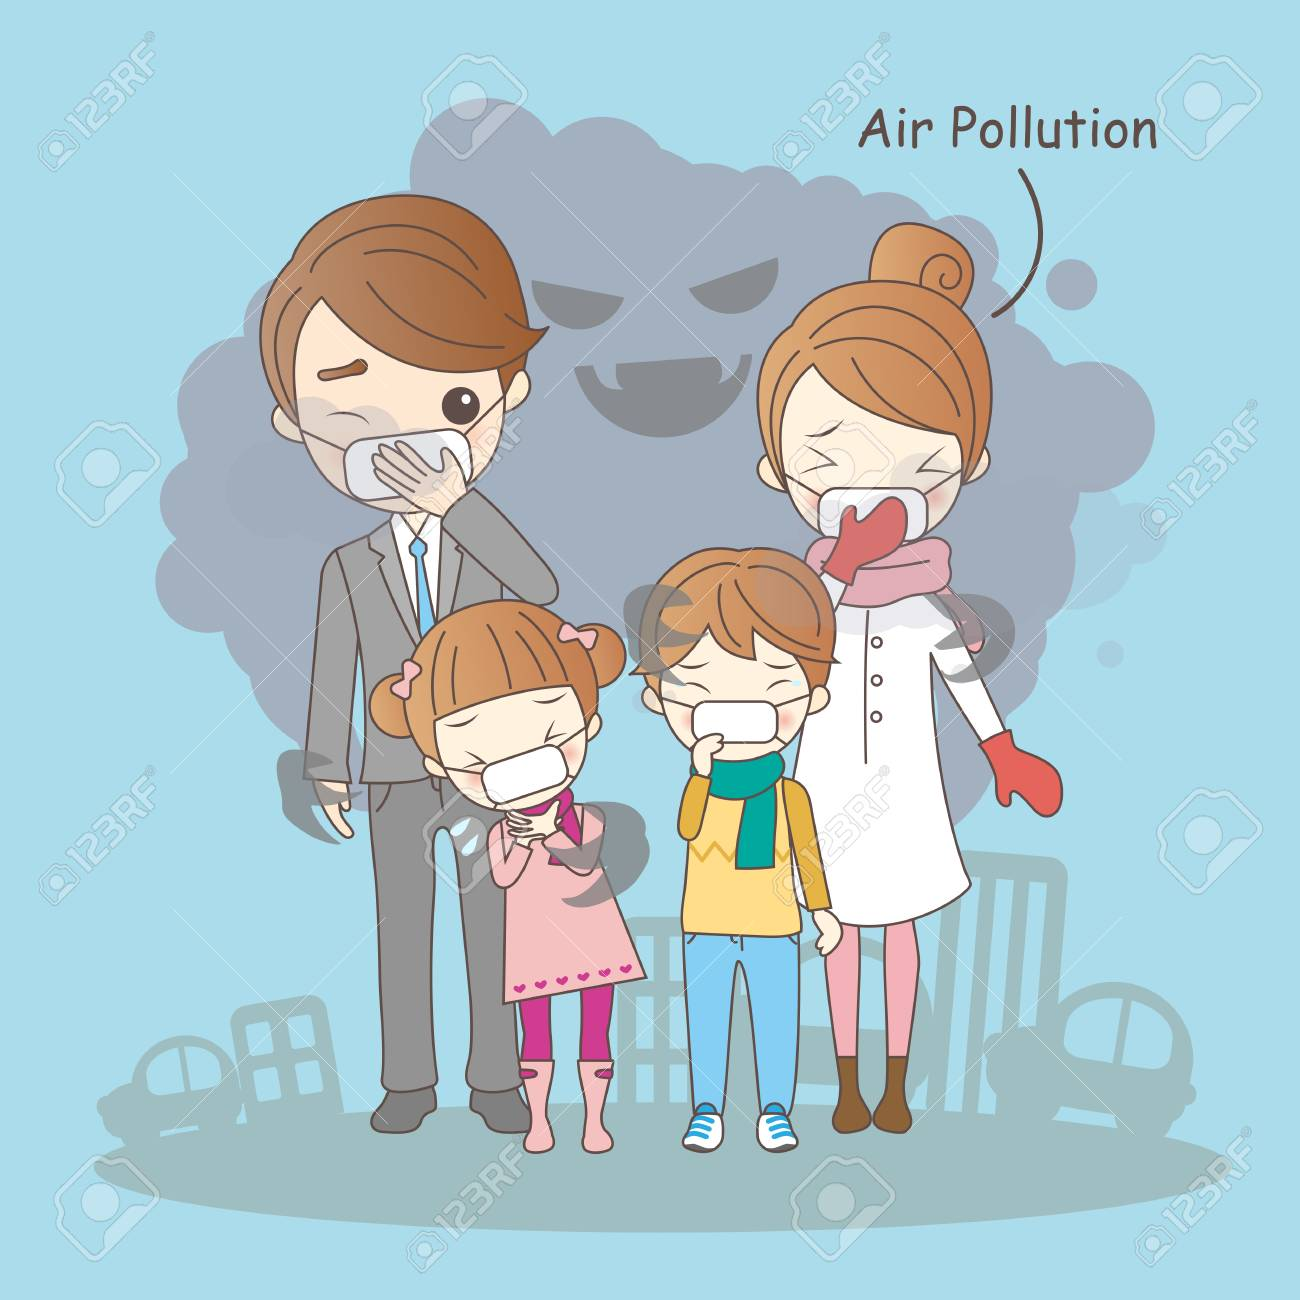 Cartoon Family With Air Pollution Great For Your Health Royalty Free Cliparts Vectors And Stock Illustration Image 69430843